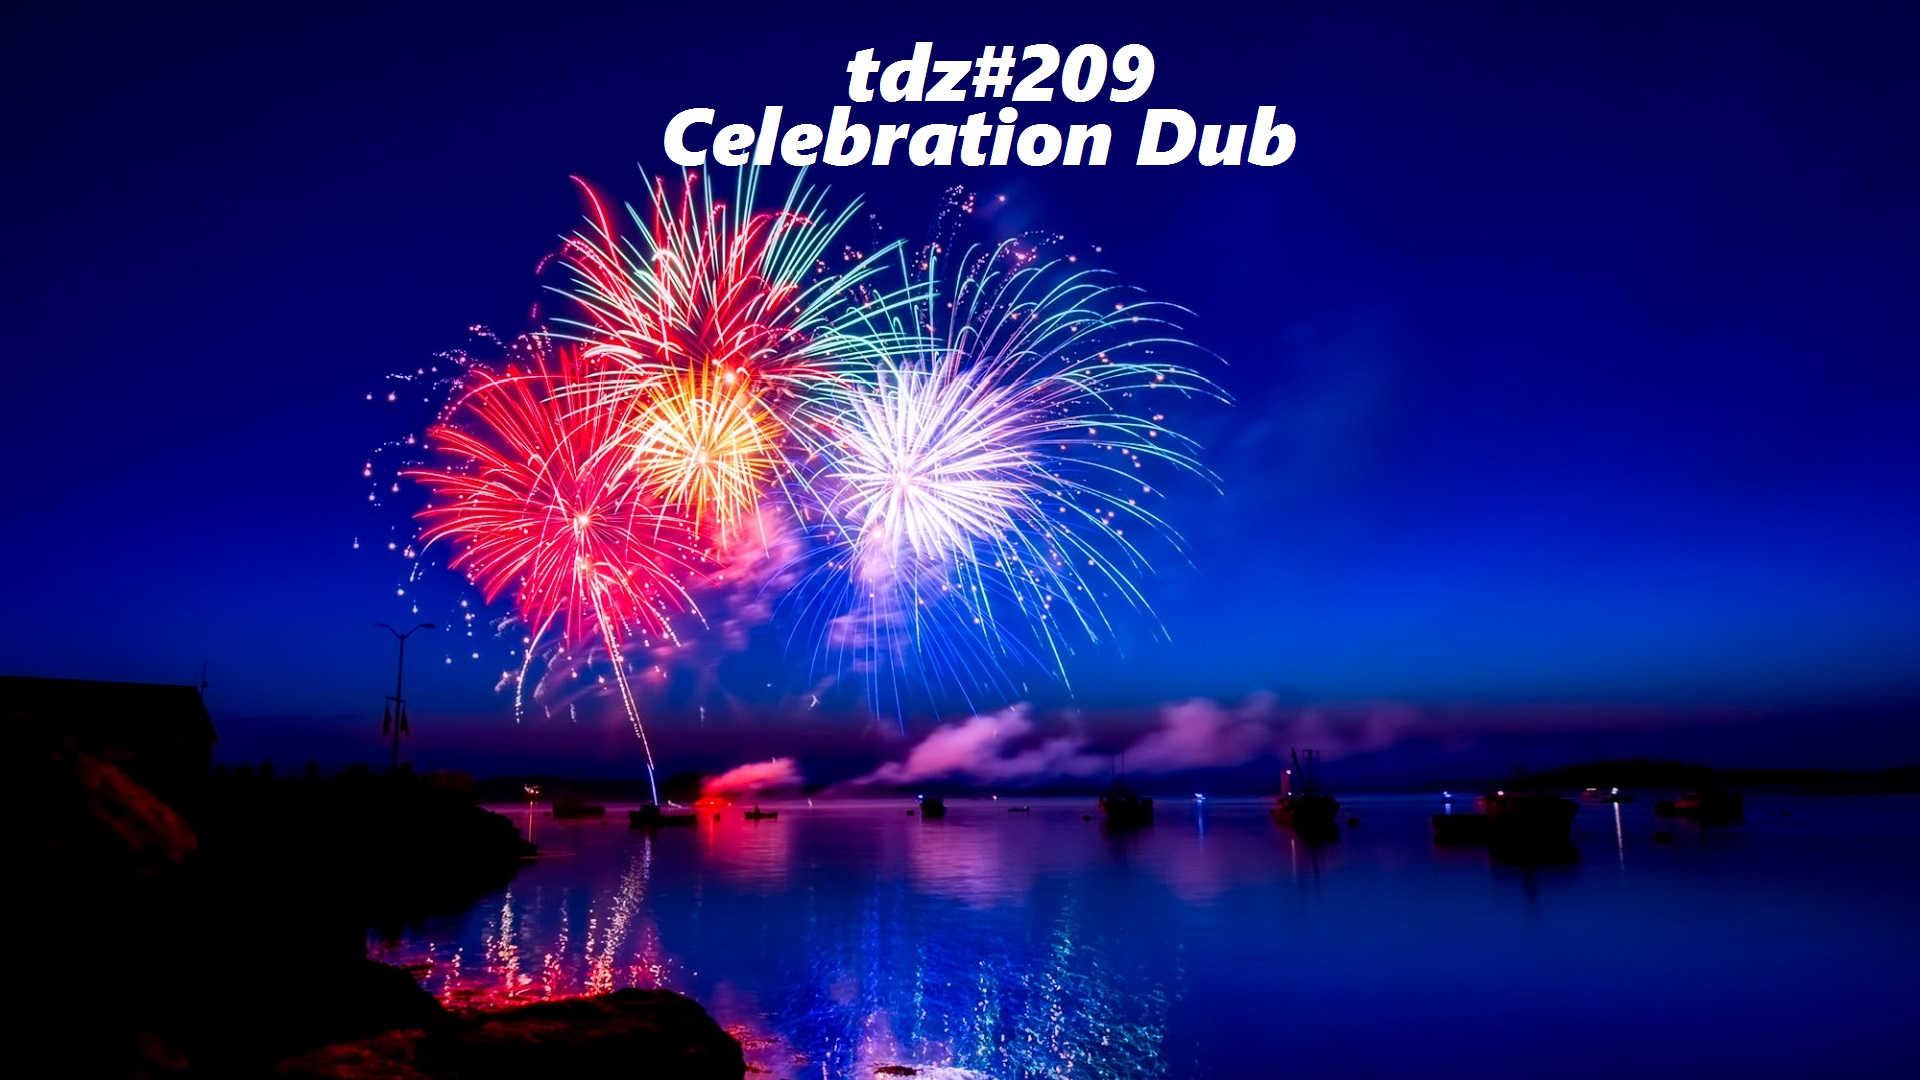 TDZ#209... Celebration Dub .....